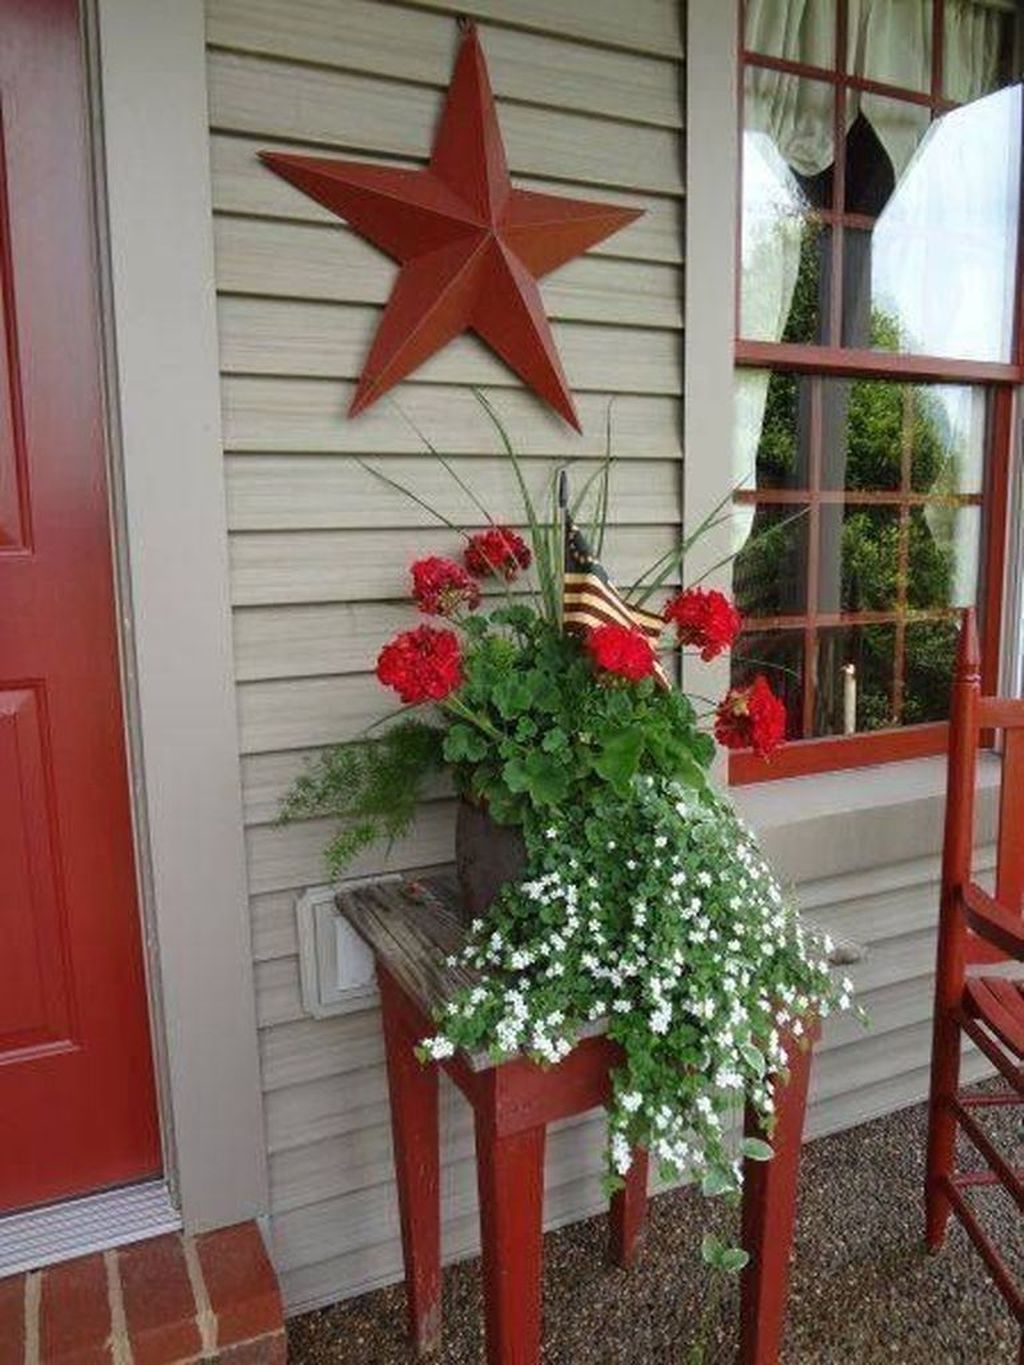 The Best Front Porch Ideas For Summer Decorating 02